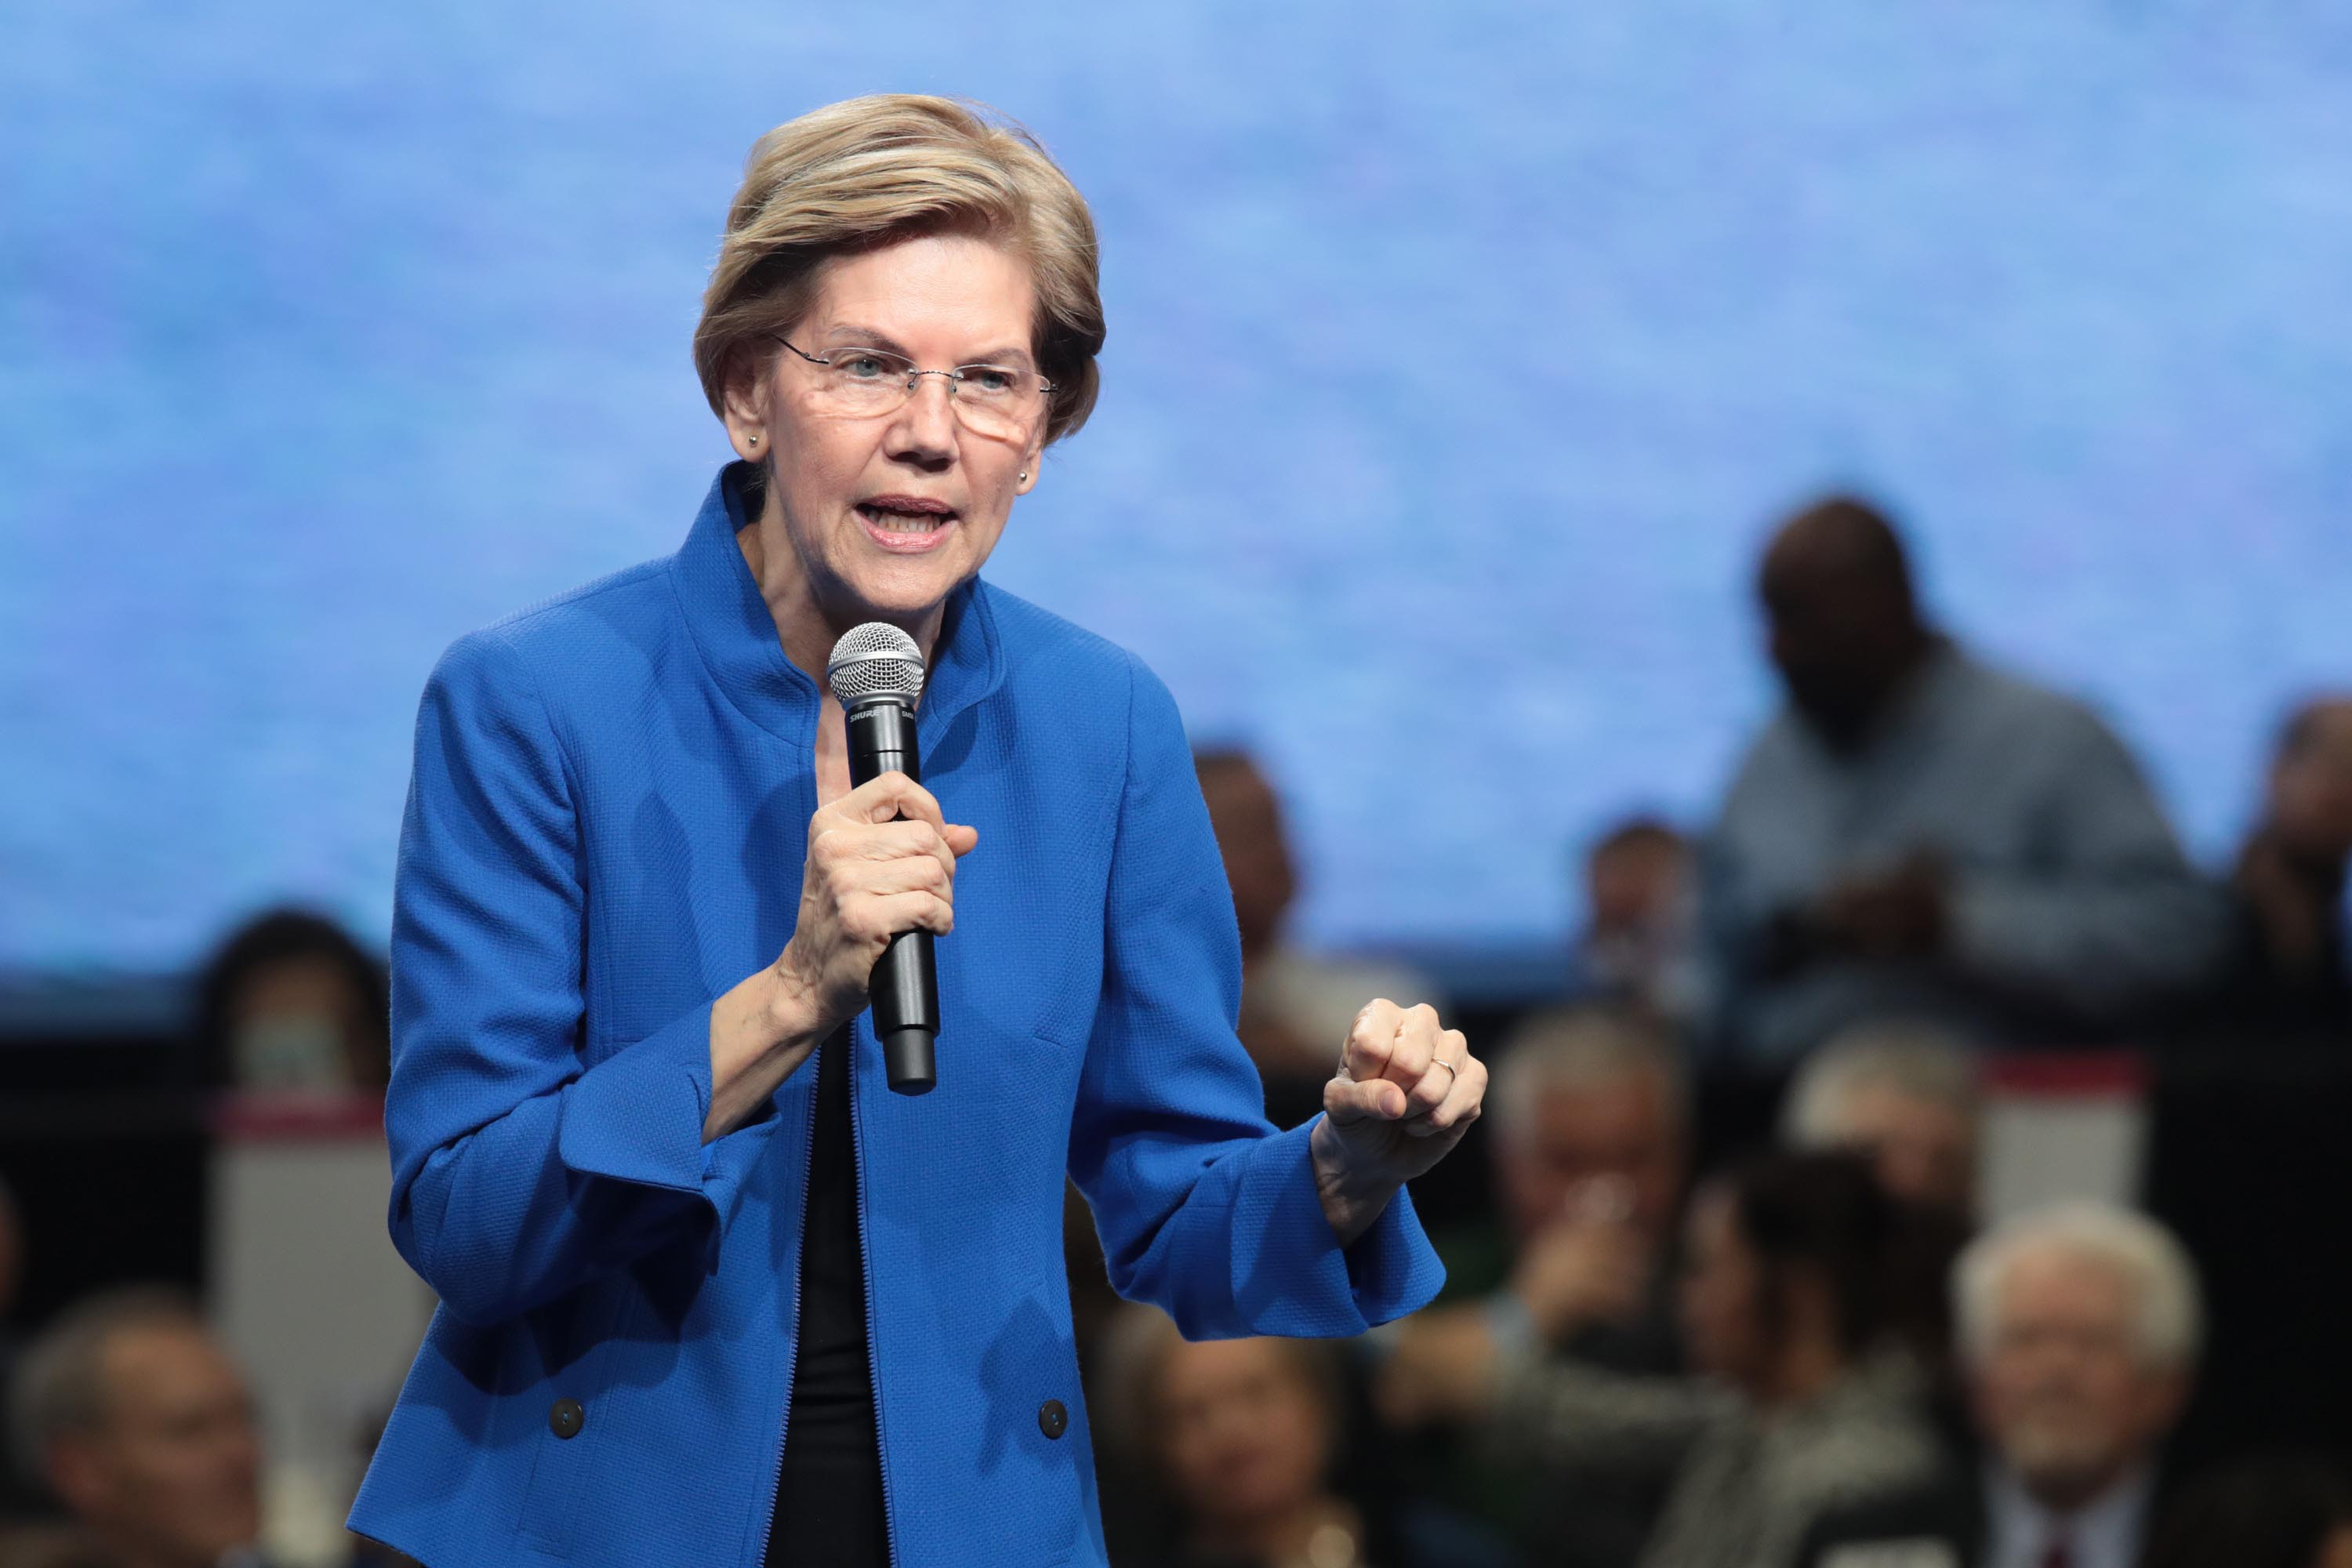 Elizabeth Warren releases medical exam results, doctor says she is 'very healthy'